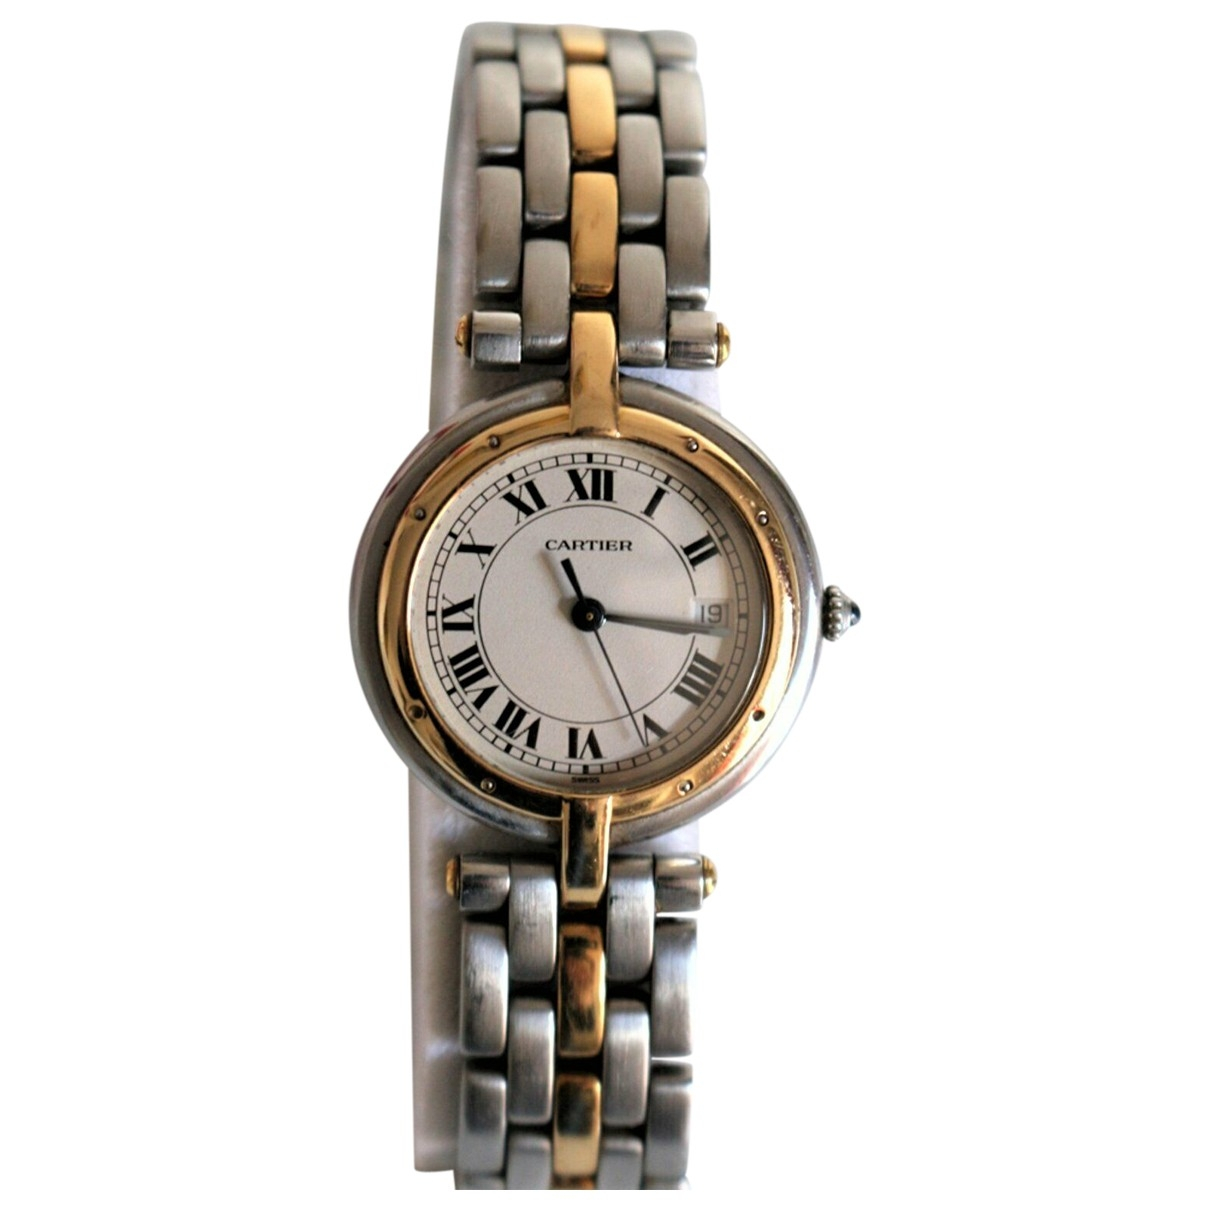 Cartier Panthere Vendome Uhr in  Silber Gold und Stahl